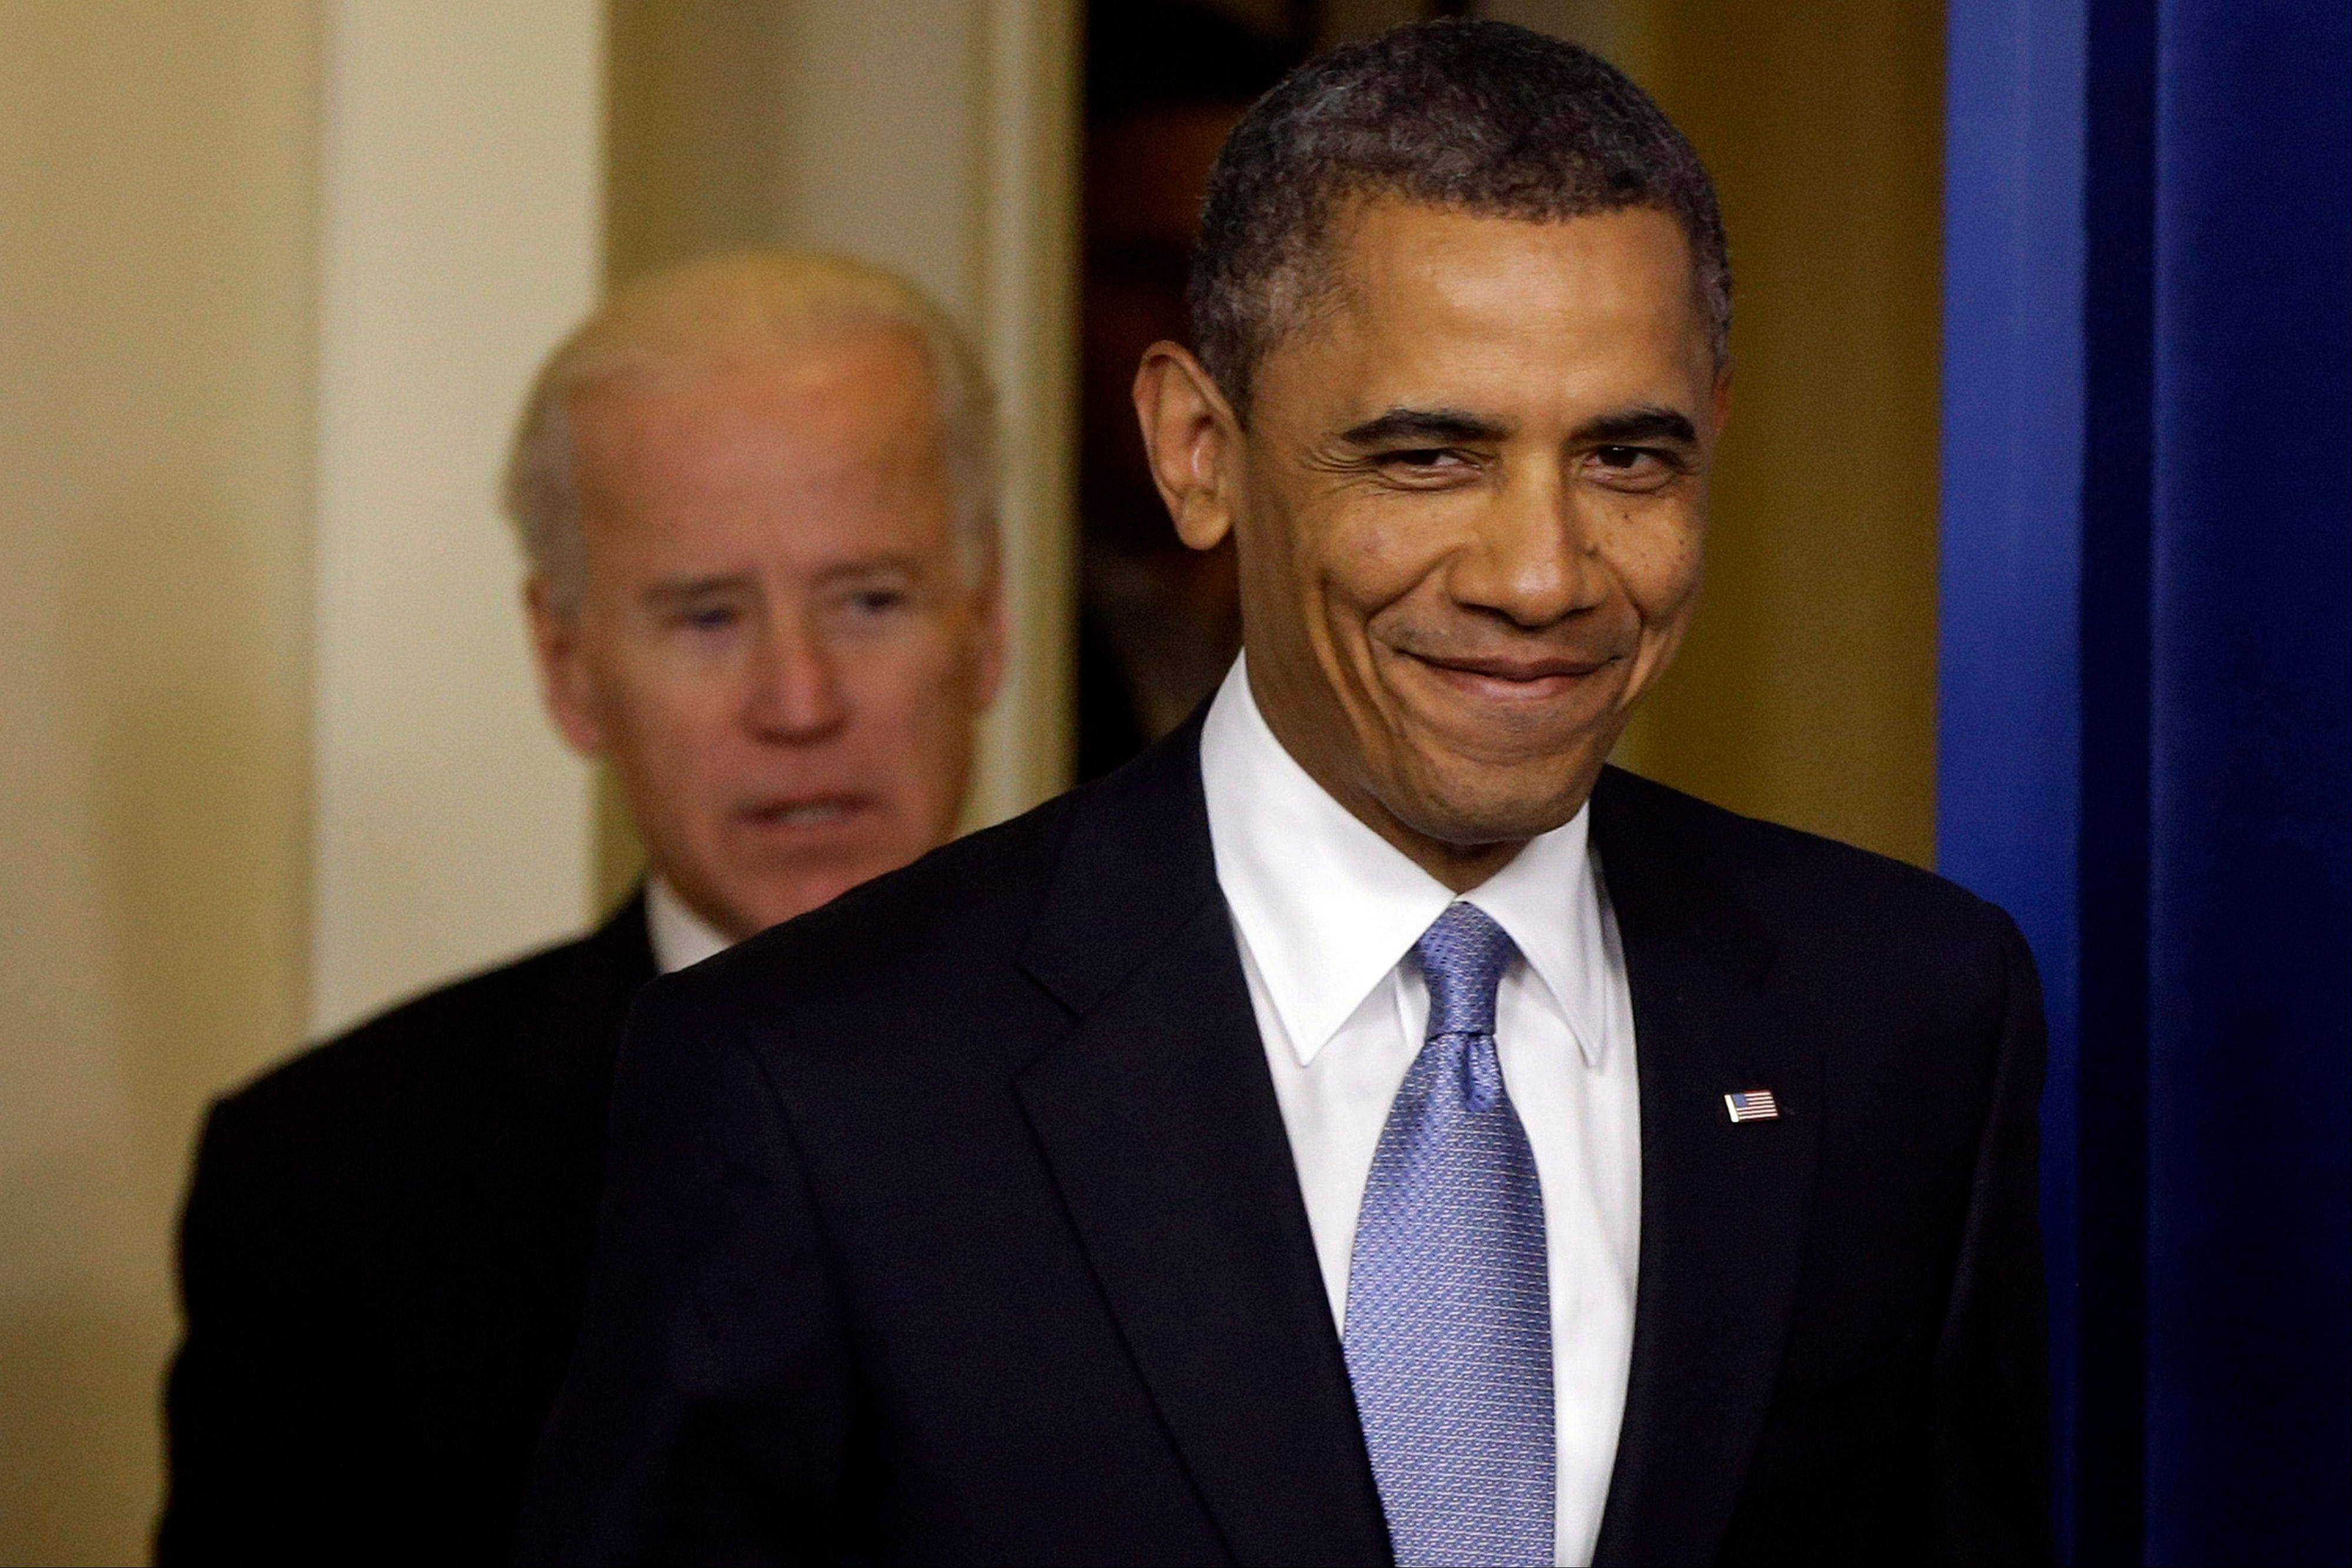 President Barack Obama smiles Tuesday as he arrives with Vice President Joe Biden to make a statement regarding the passage of the fiscal cliff bill in the Brady Press Briefing Room at the White House in Washington.